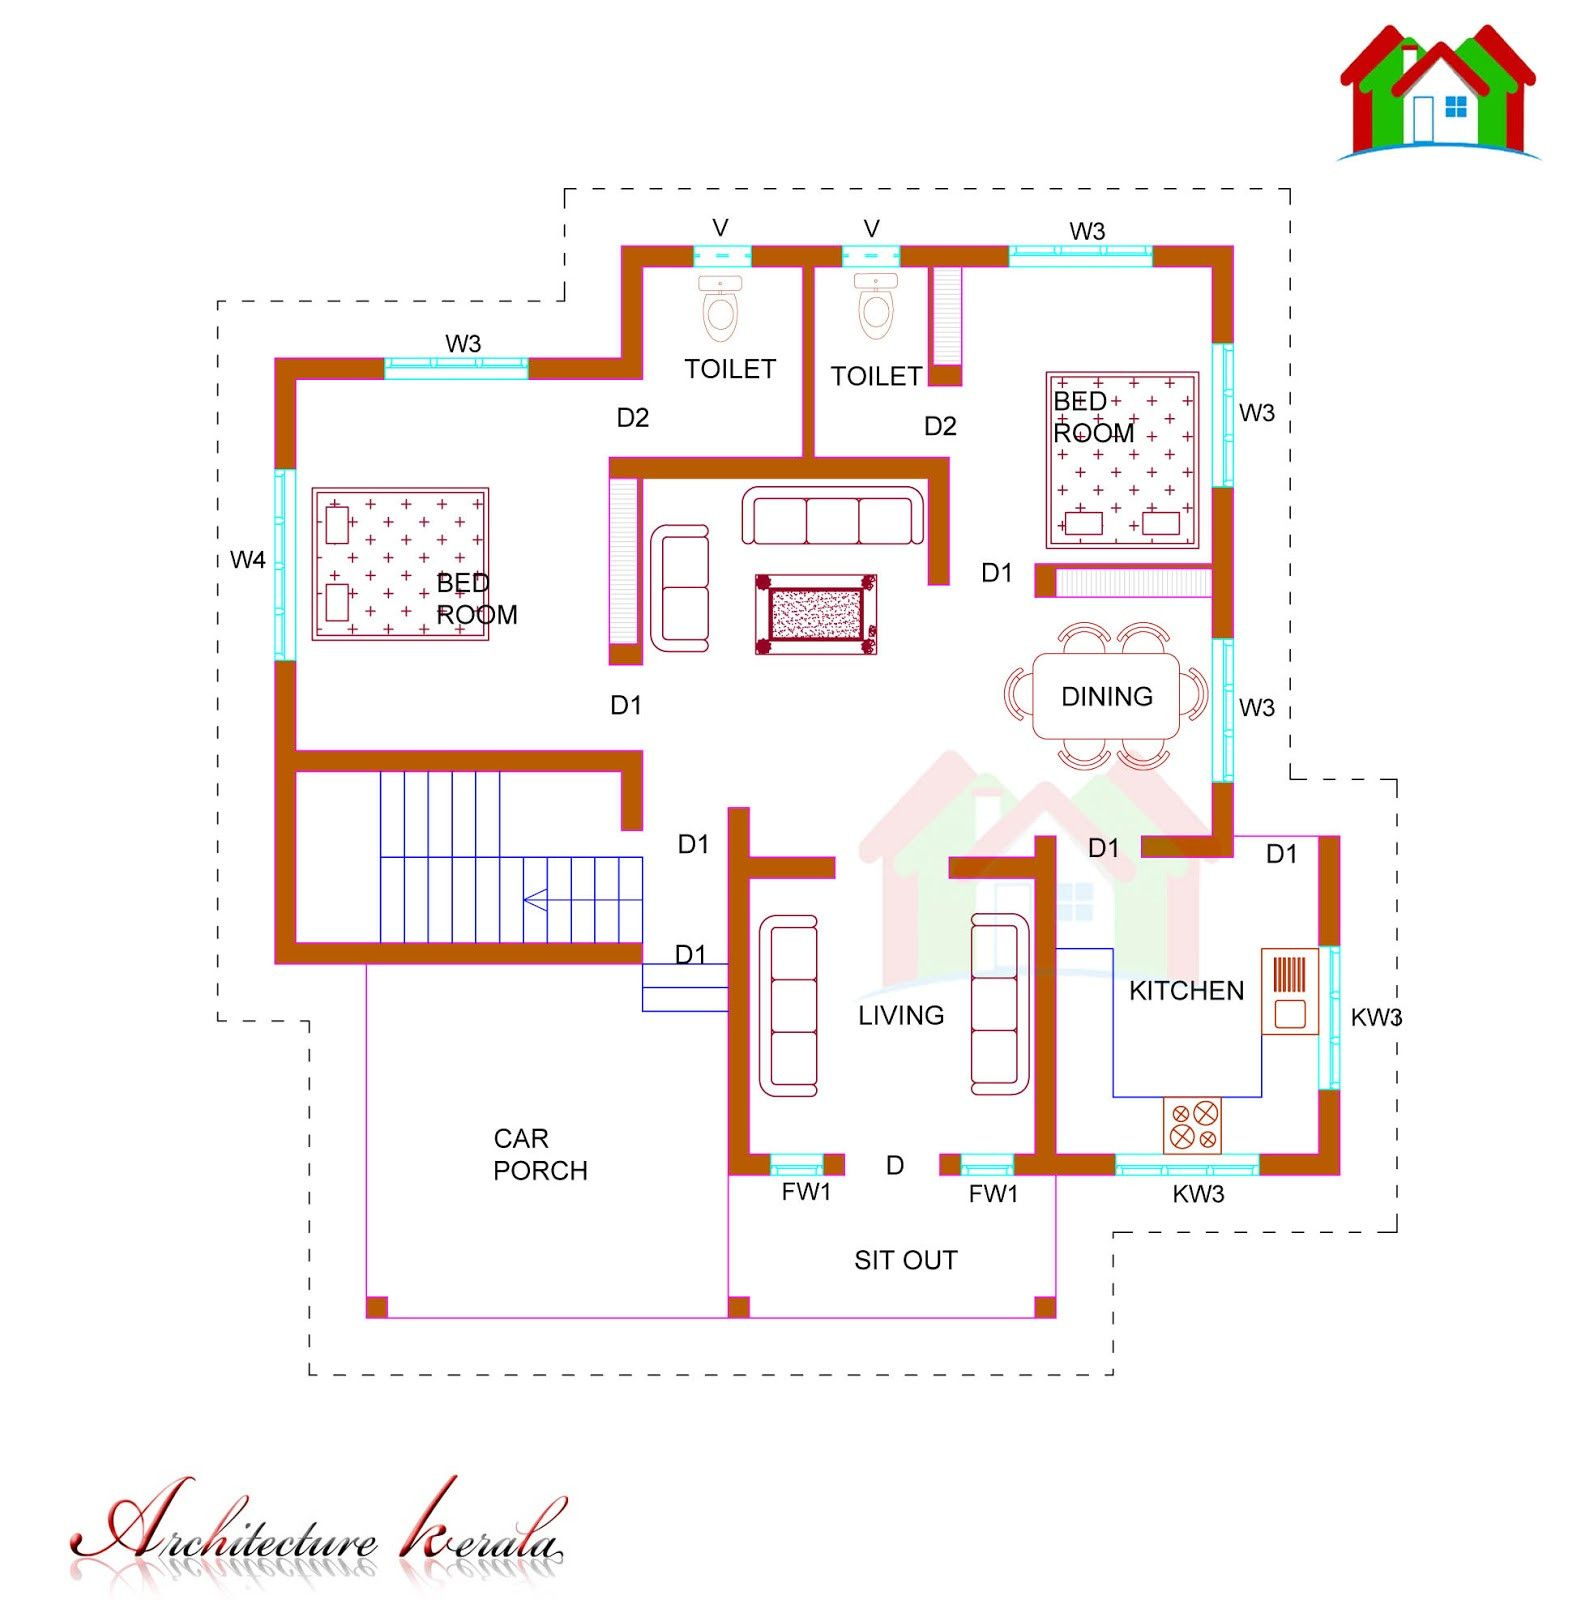 1200 Sq Ft House Plans 3 Bedroom Elegant 1000 Square Feet House Plan Kerala Model Homes Zone House Plans With Photos 1200 Sq Ft House House Plans